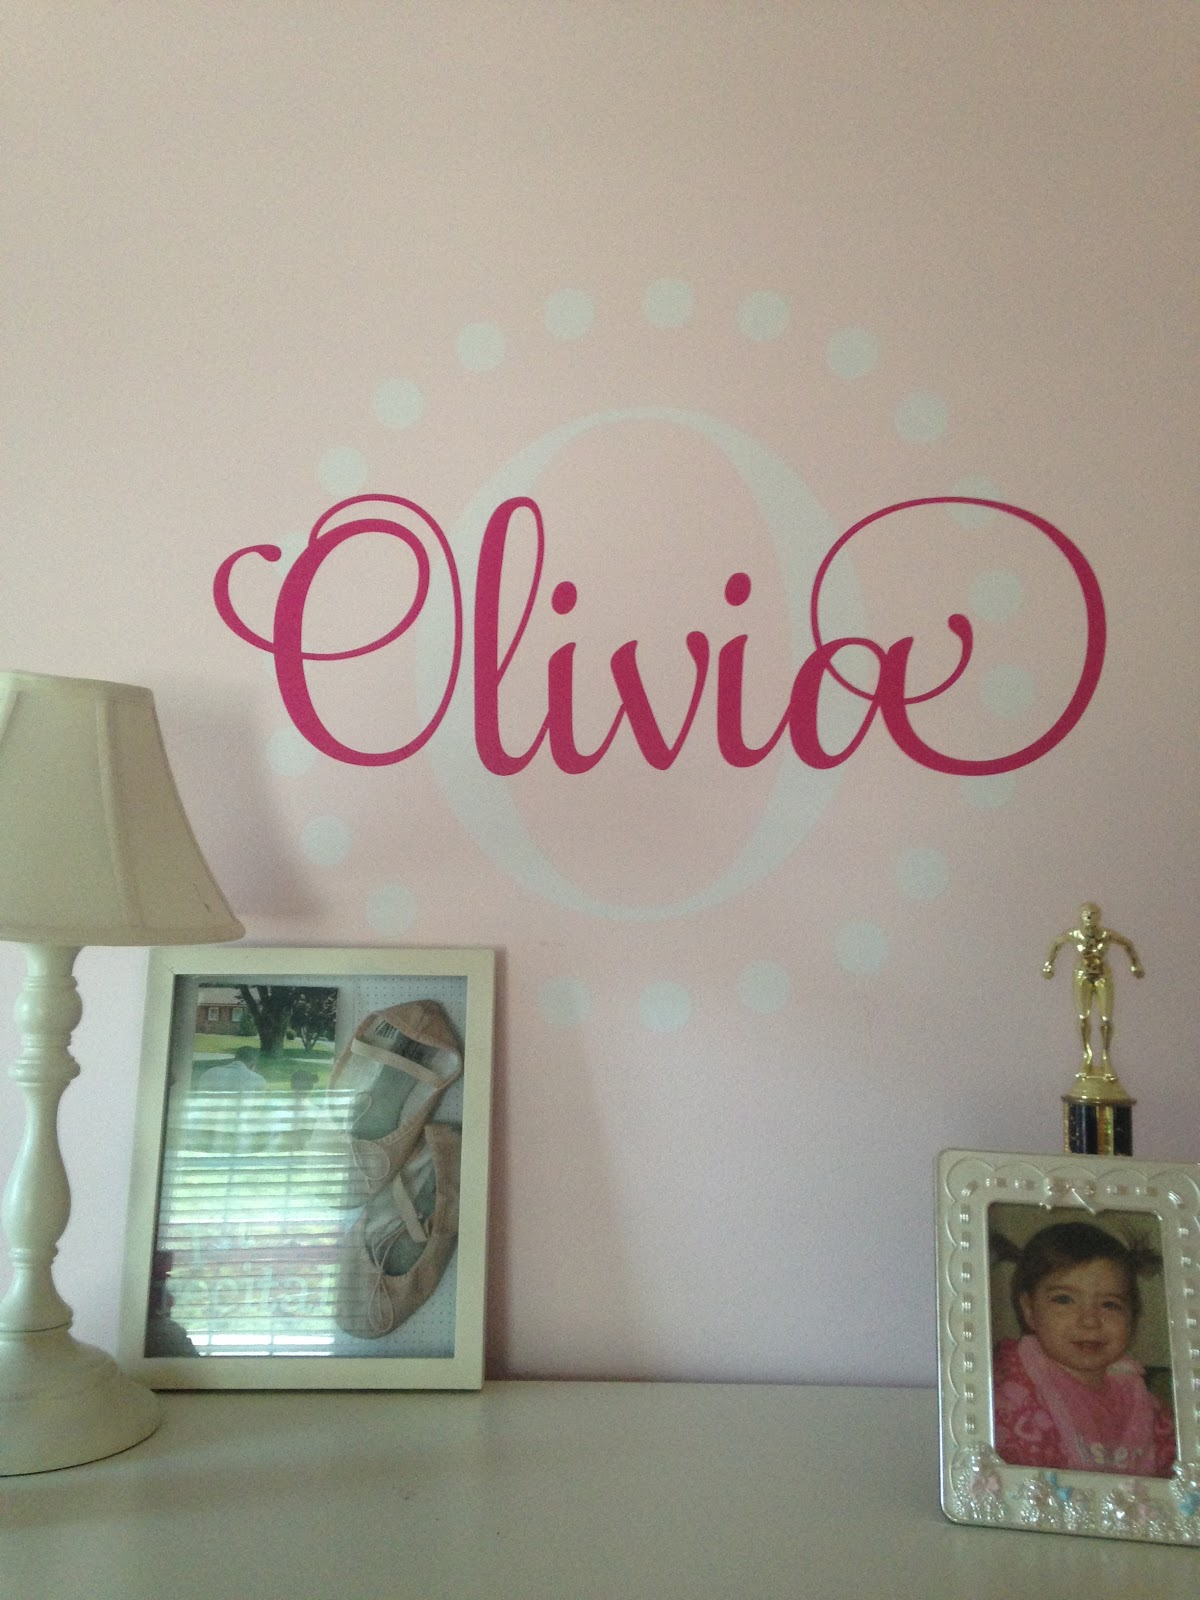 How To Make Large Wall Decals With Cricut